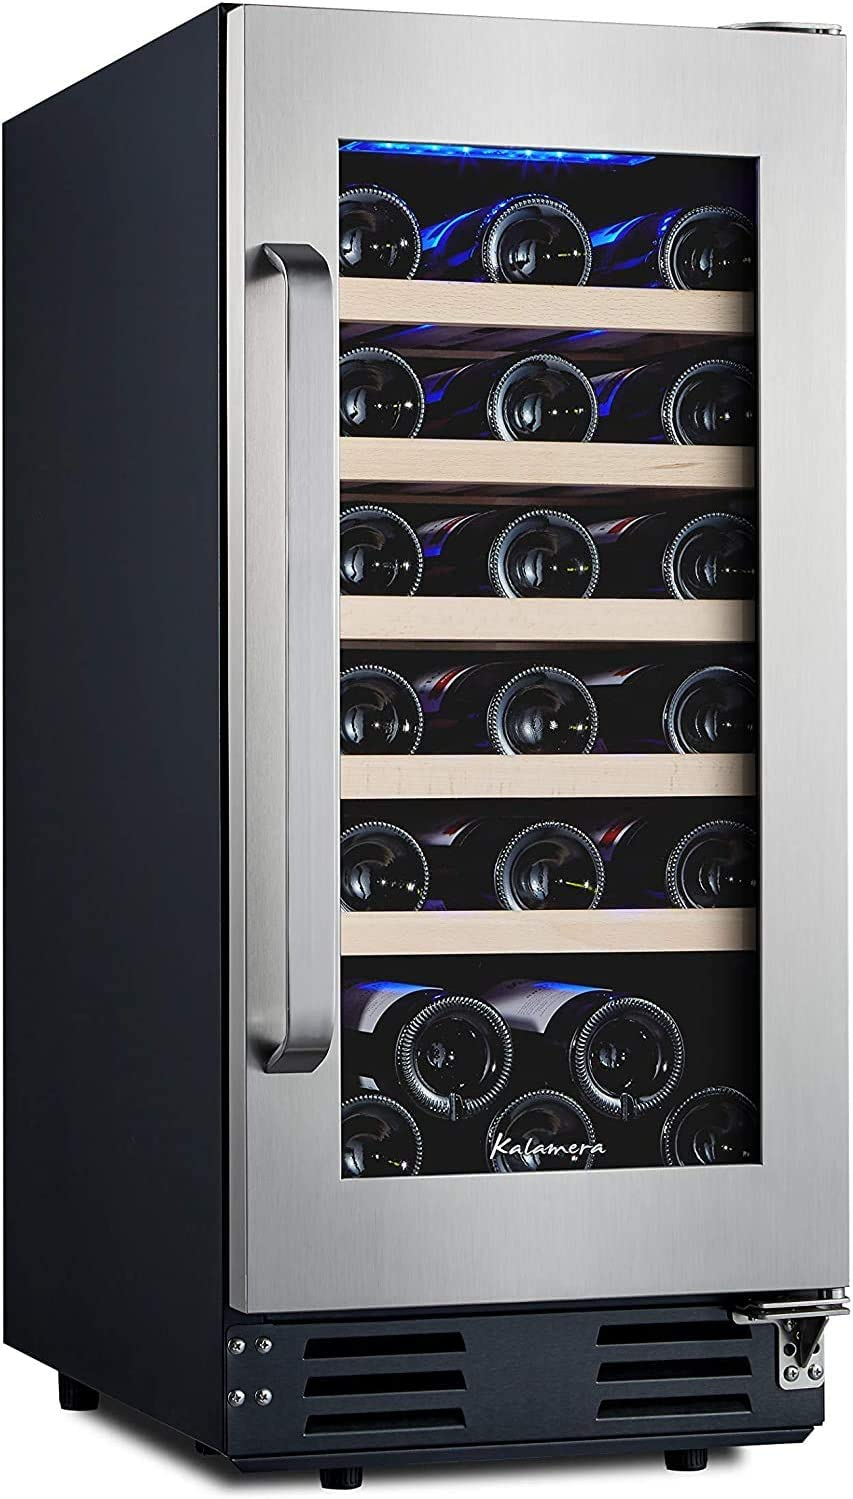 Kalamera 15 Inch Wine Refrigerator Cooler 30 Bottle Built-in or Freestanding with Stainless Steel & Double-Layer Tempered Glass Door and Temperature Memory Function